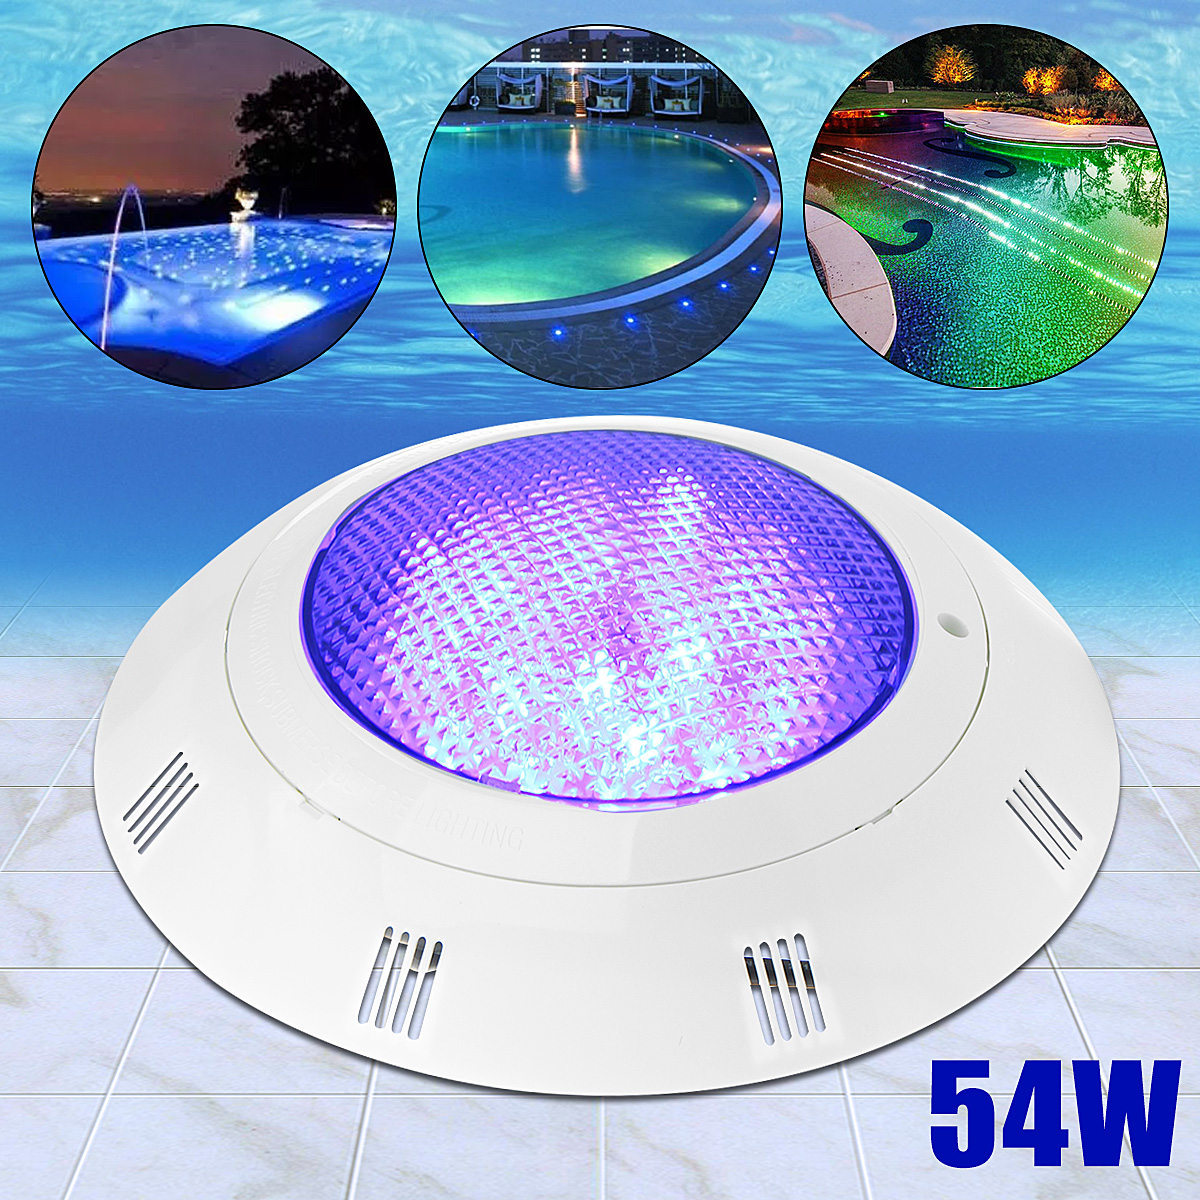 12V 54W Swimming Pool Light IP68 108 LEDs Wall Mounted Power LED Outdoor Underwater Lighting 7 Colors RGB Remote Control